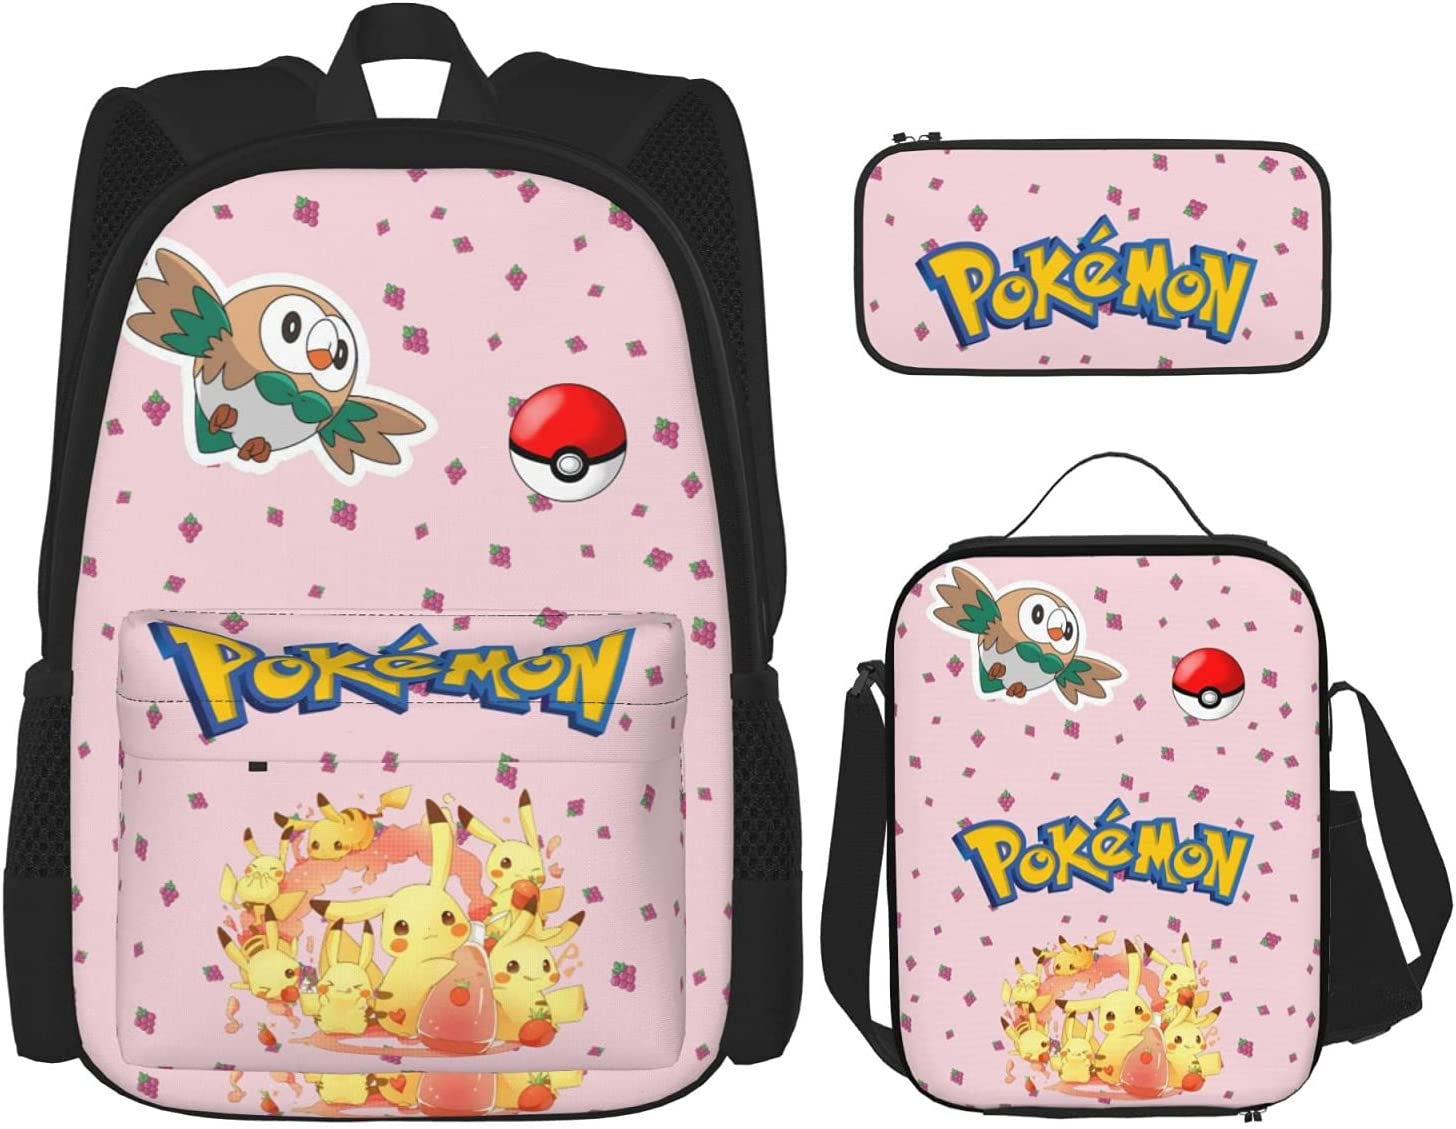 Multifunction Travel Backpack + Pencil Bag discount Combinat Case Lunch Max 79% OFF